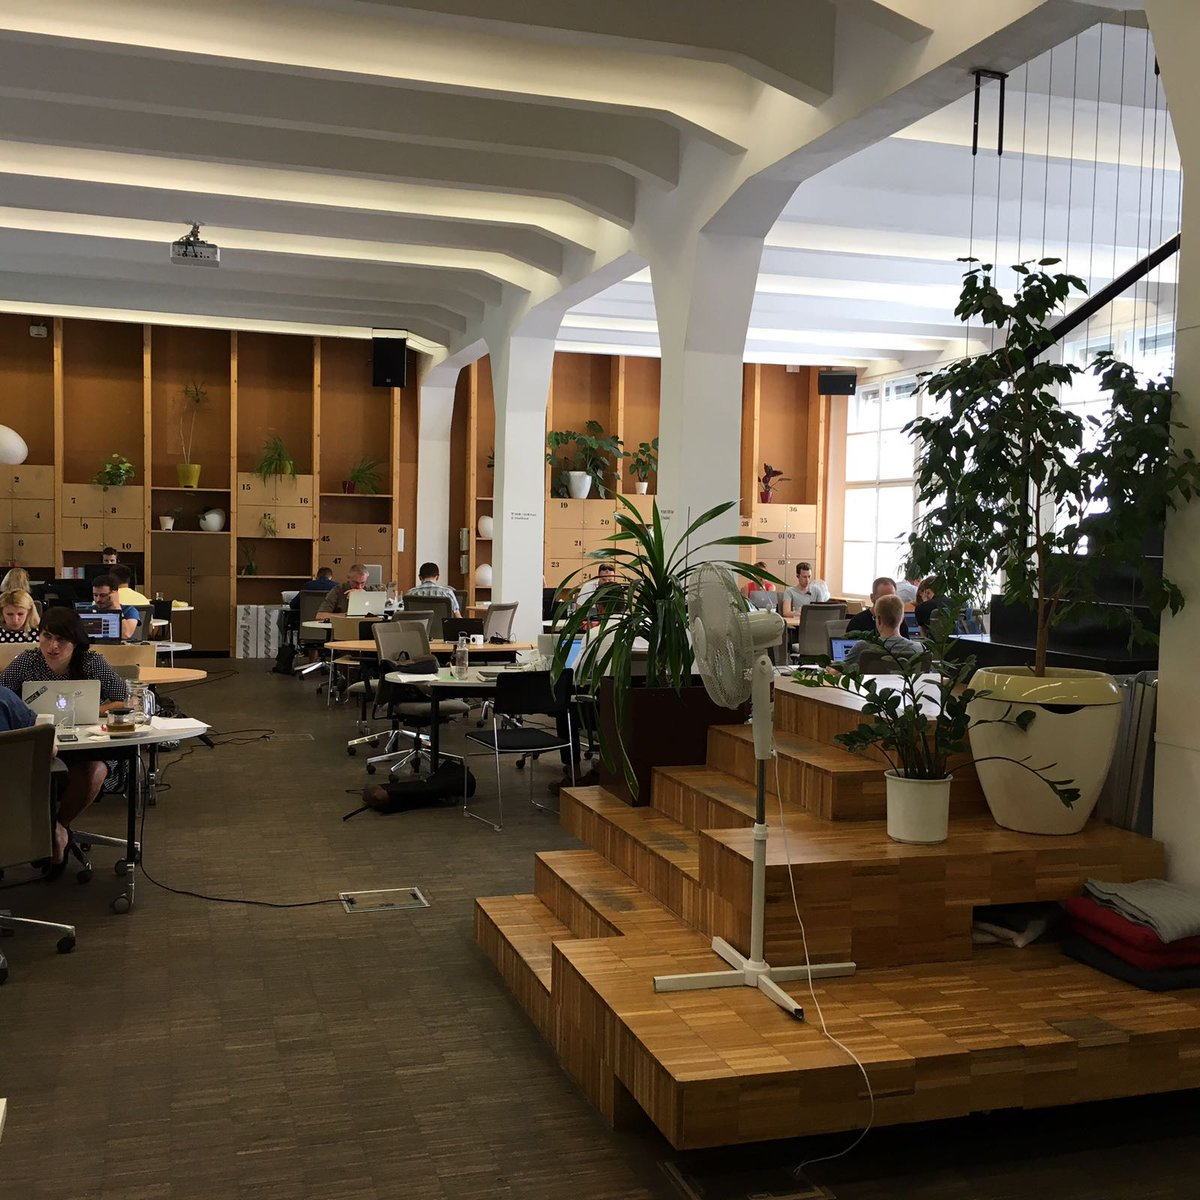 Our chief editor was in #Prague today for interviews with #SocEnt at @ImpactHubPraha. Stay tuned for the story of @forewear in so/magazine!<br>http://pic.twitter.com/pyVsLKmcpJ